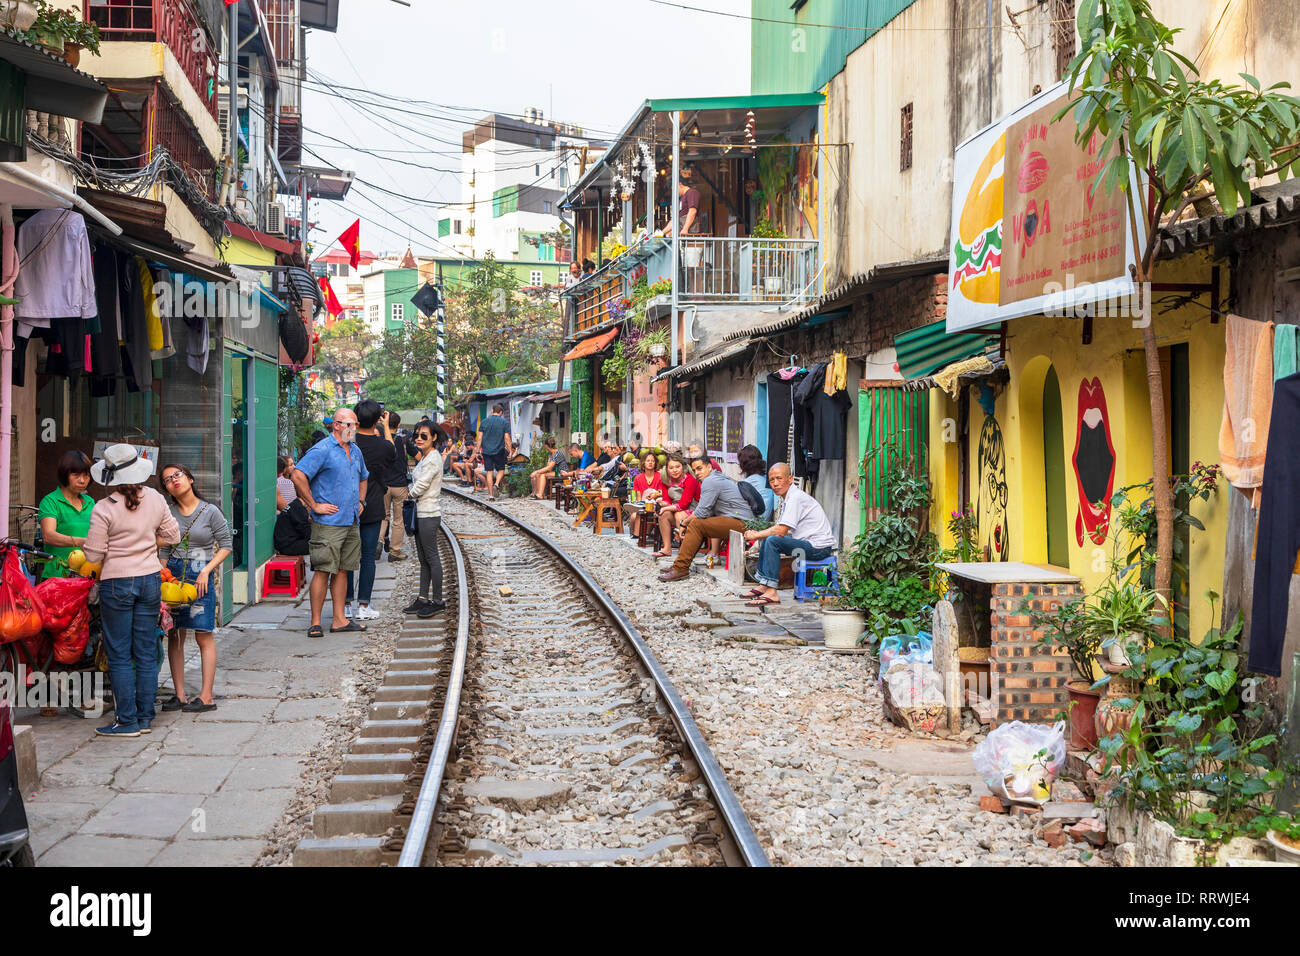 View of Hanoi train street between Le Duan and Kham Thin Street in Hanoi old quarter, Hanoi, Vietnam, Asia - Stock Image